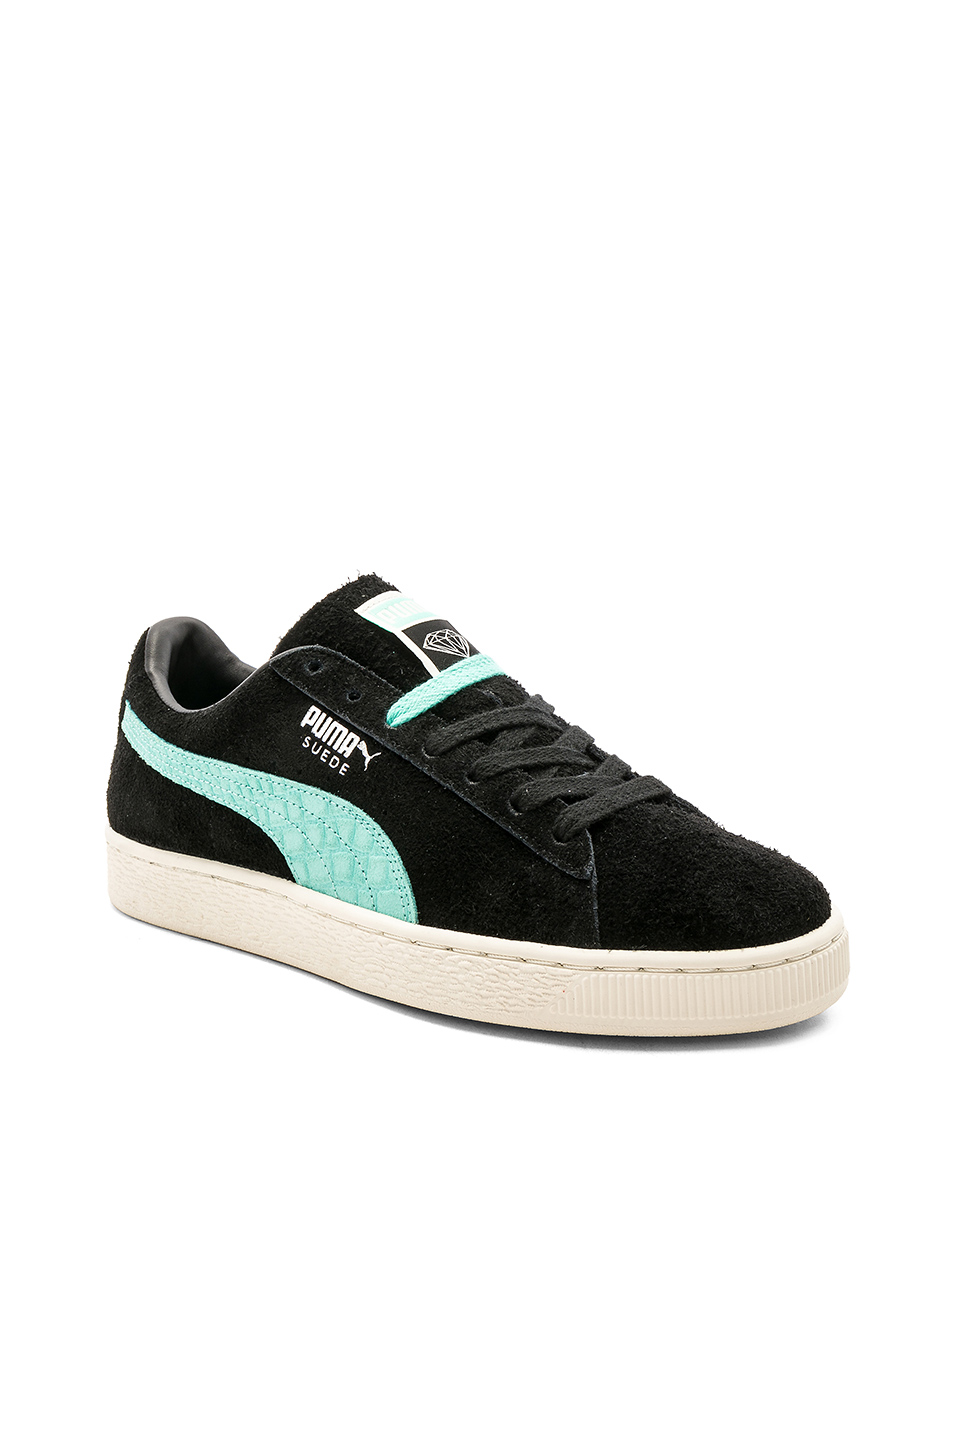 Buy Original Puma Select x Diamond Supply Co Suede at Indonesia ... dd9cb0413